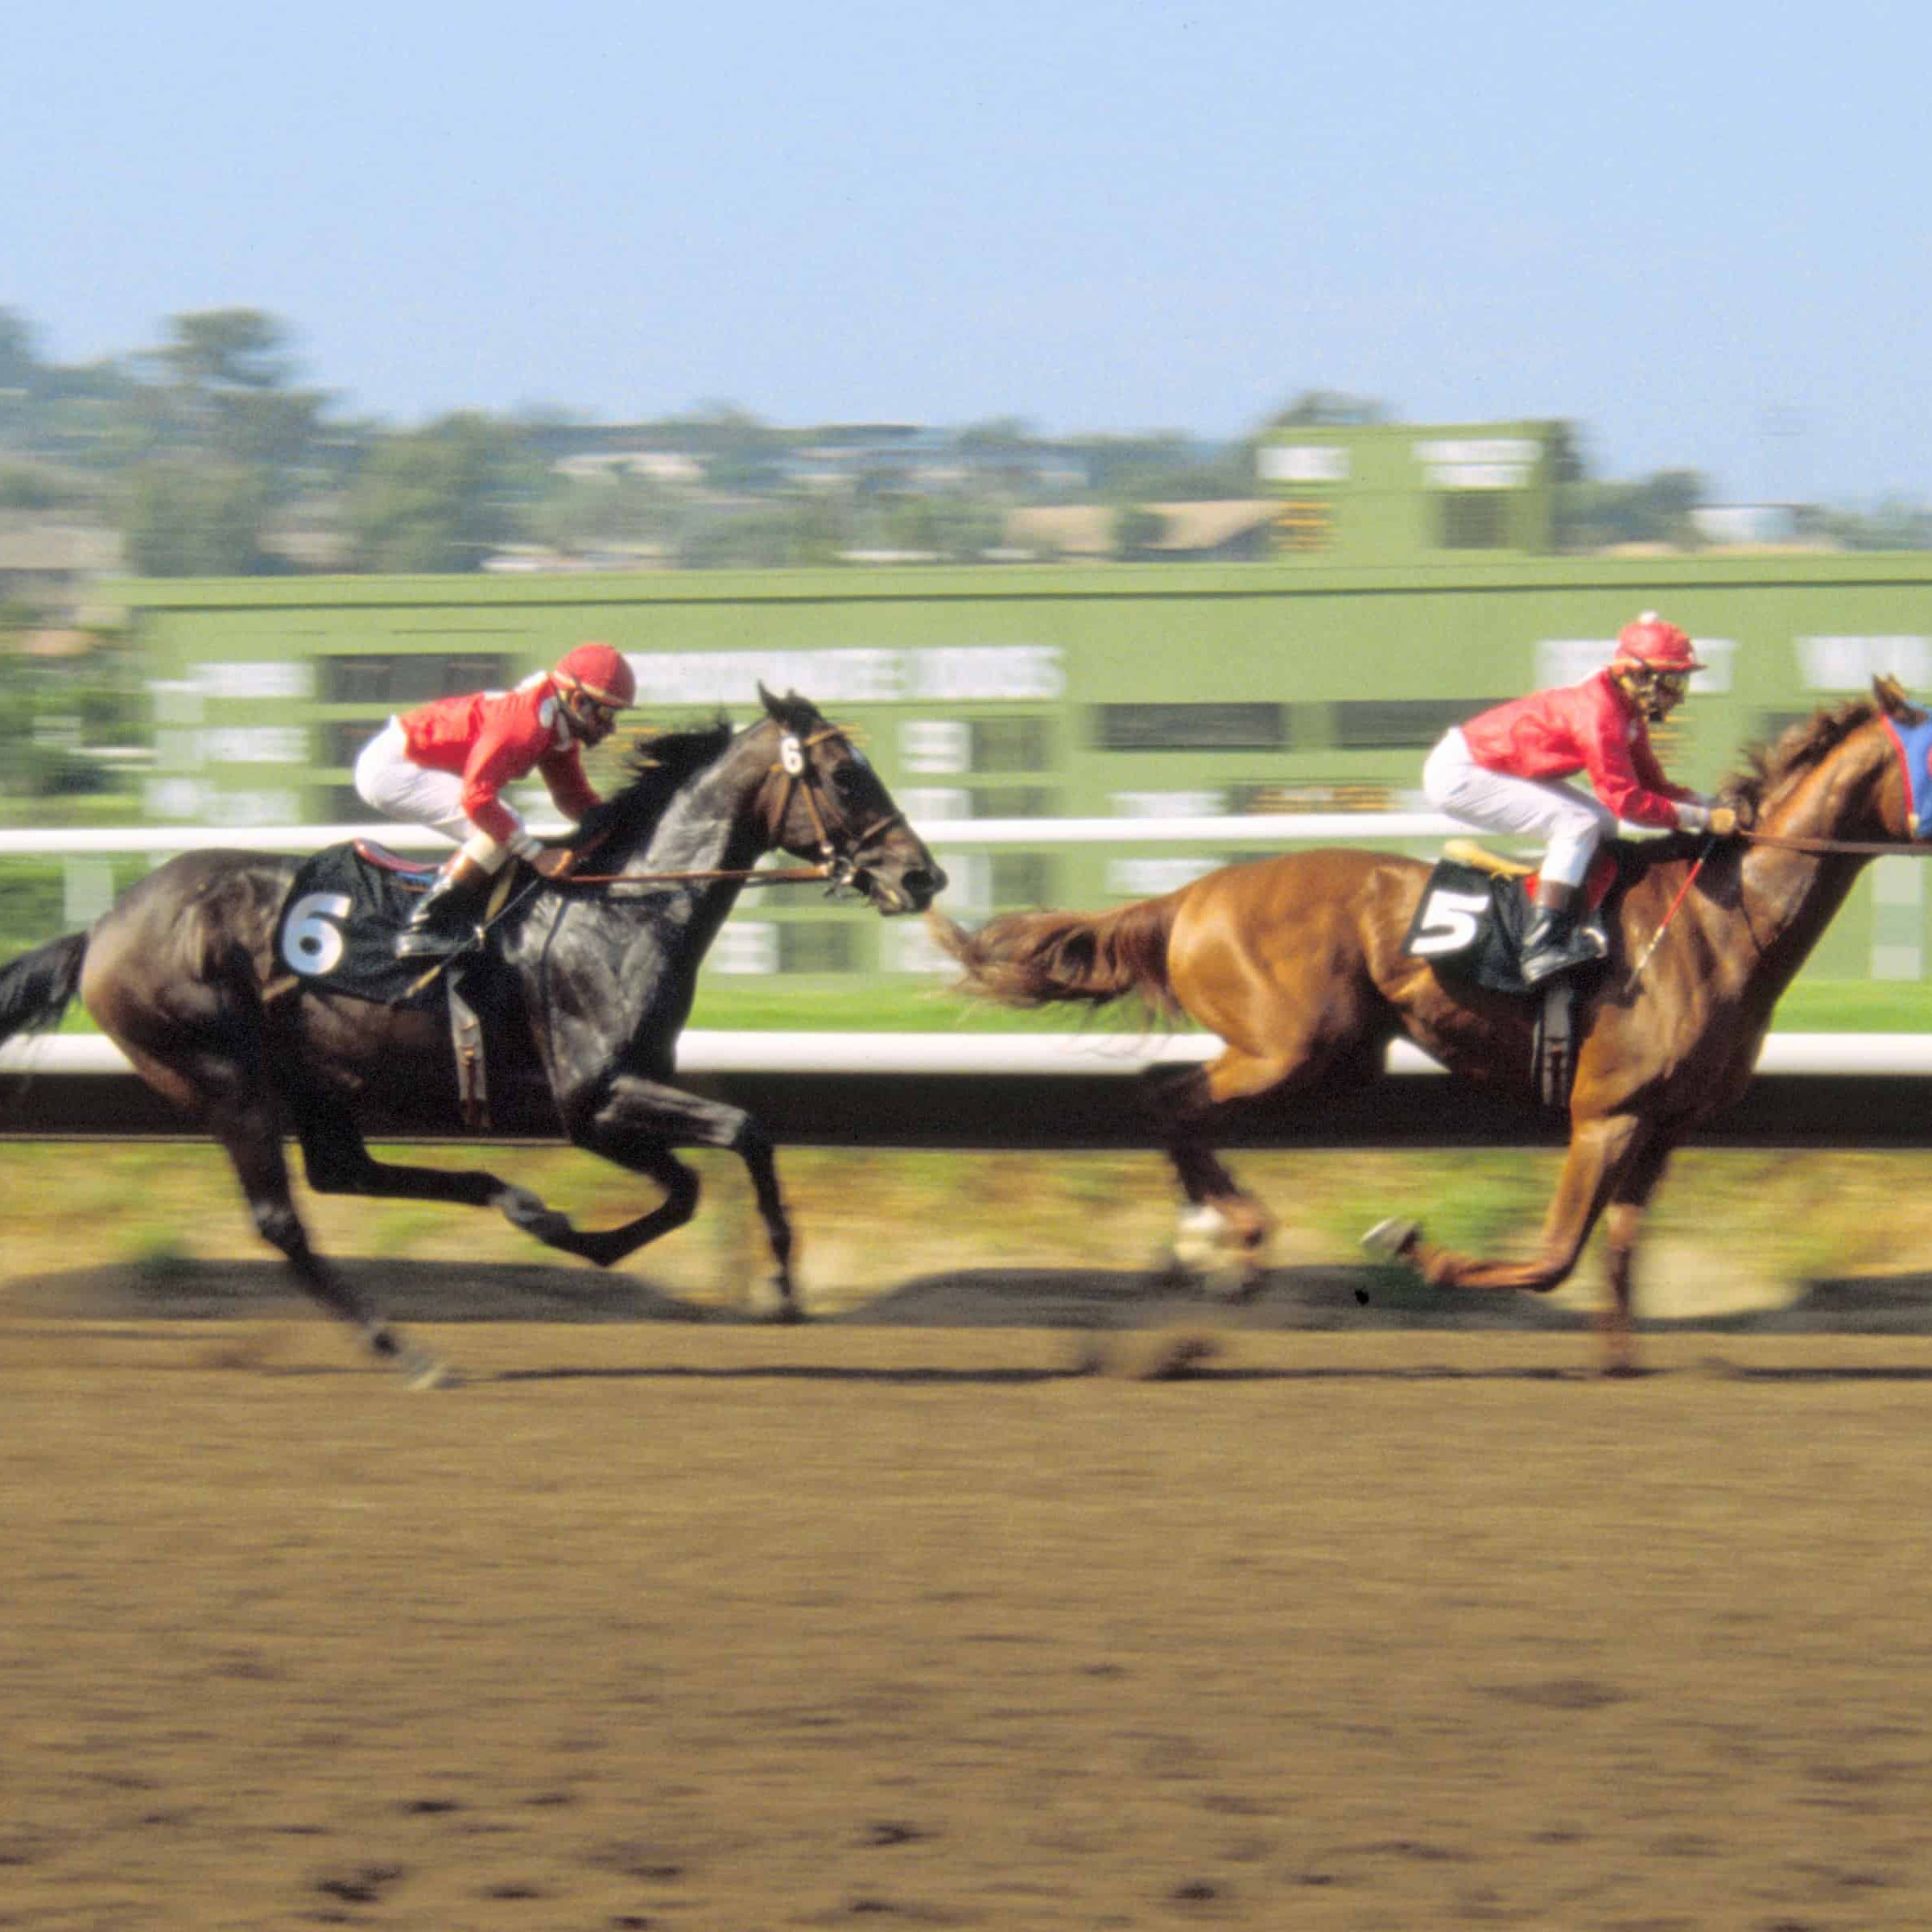 horse_racing_at_the_del_mar_racetrack_in_del_mar_ca